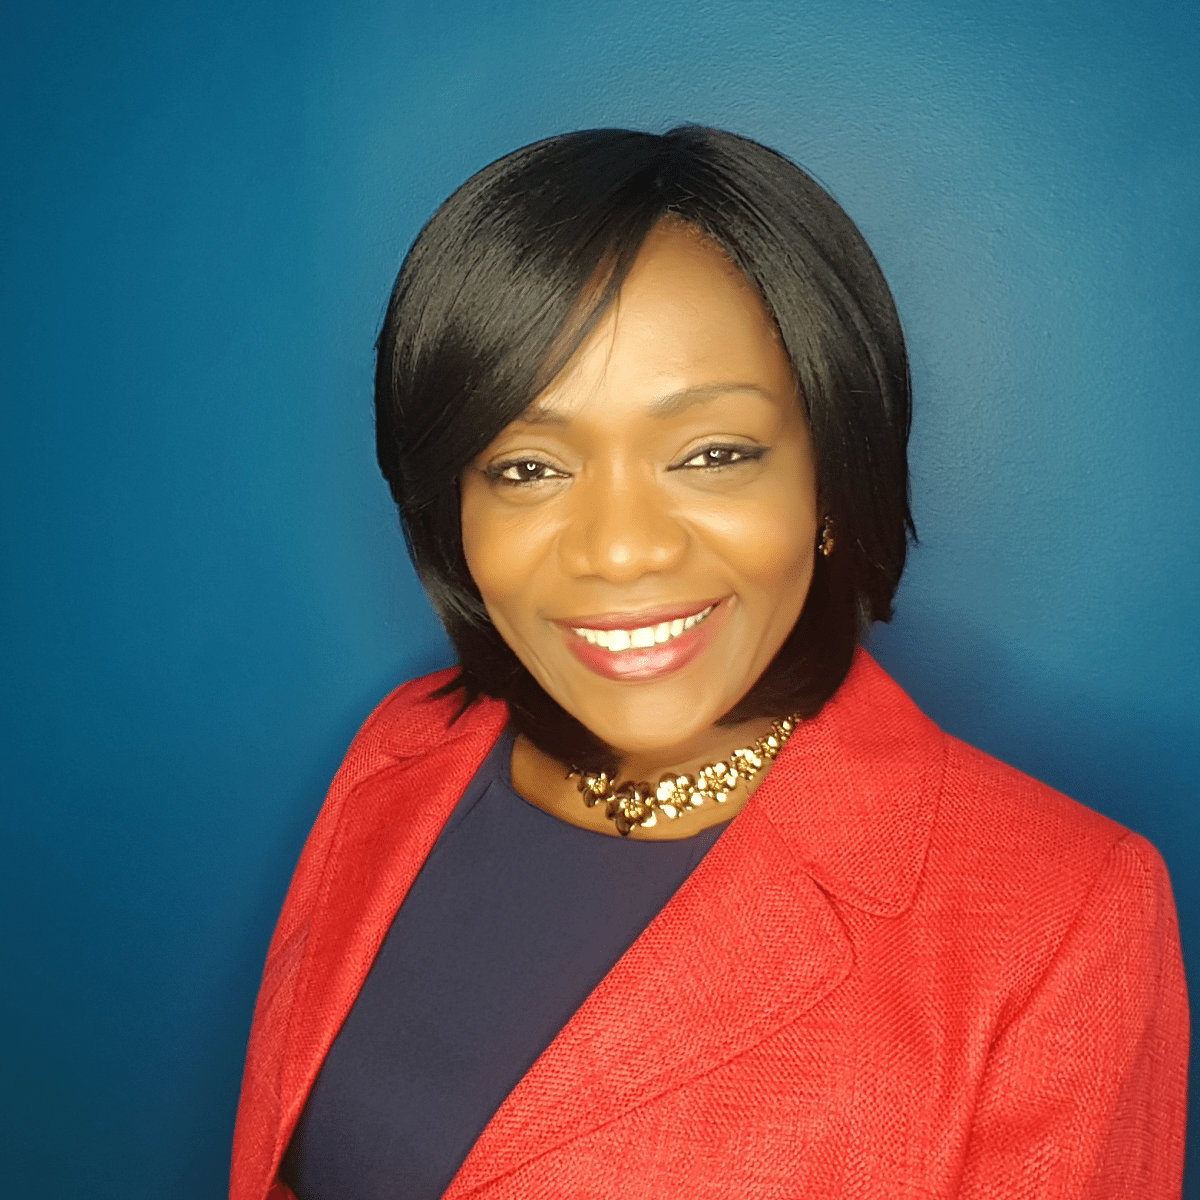 Lillian Agbeyegbe, Project Manager, NCHH